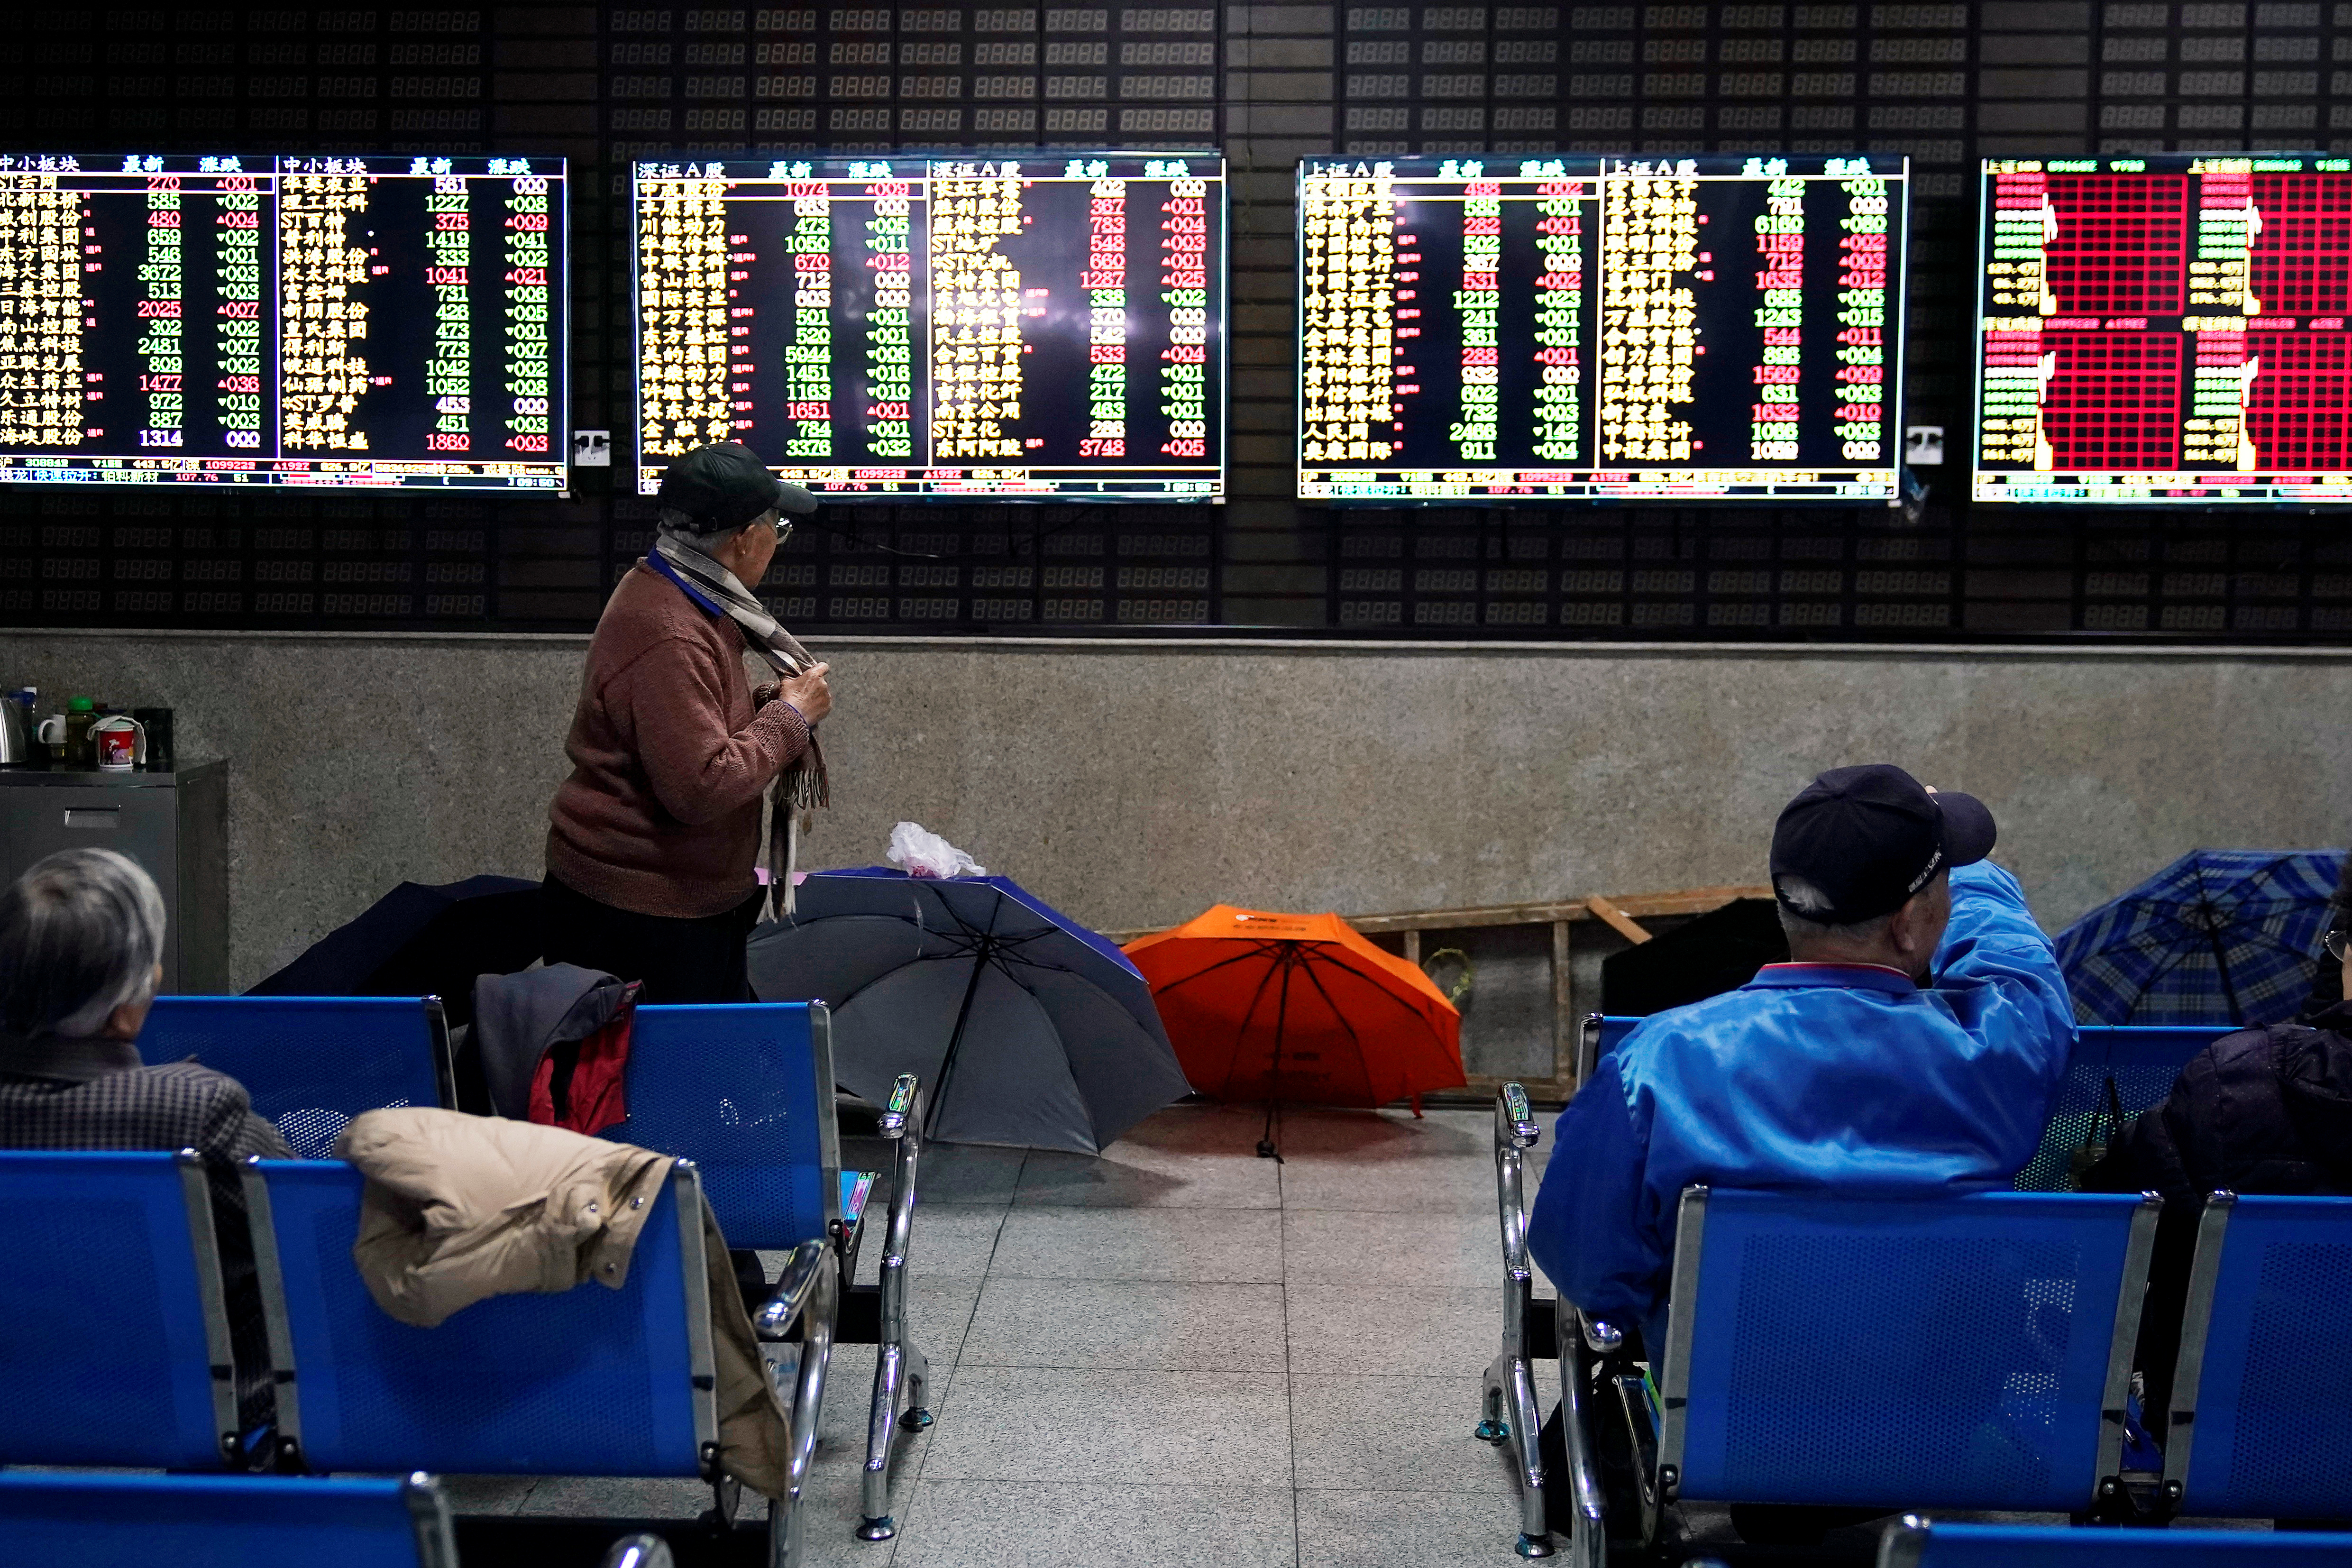 Investors look at screens showing stock information at a brokerage house in Shanghai, China January 16, 2020. REUTERS/Aly Song